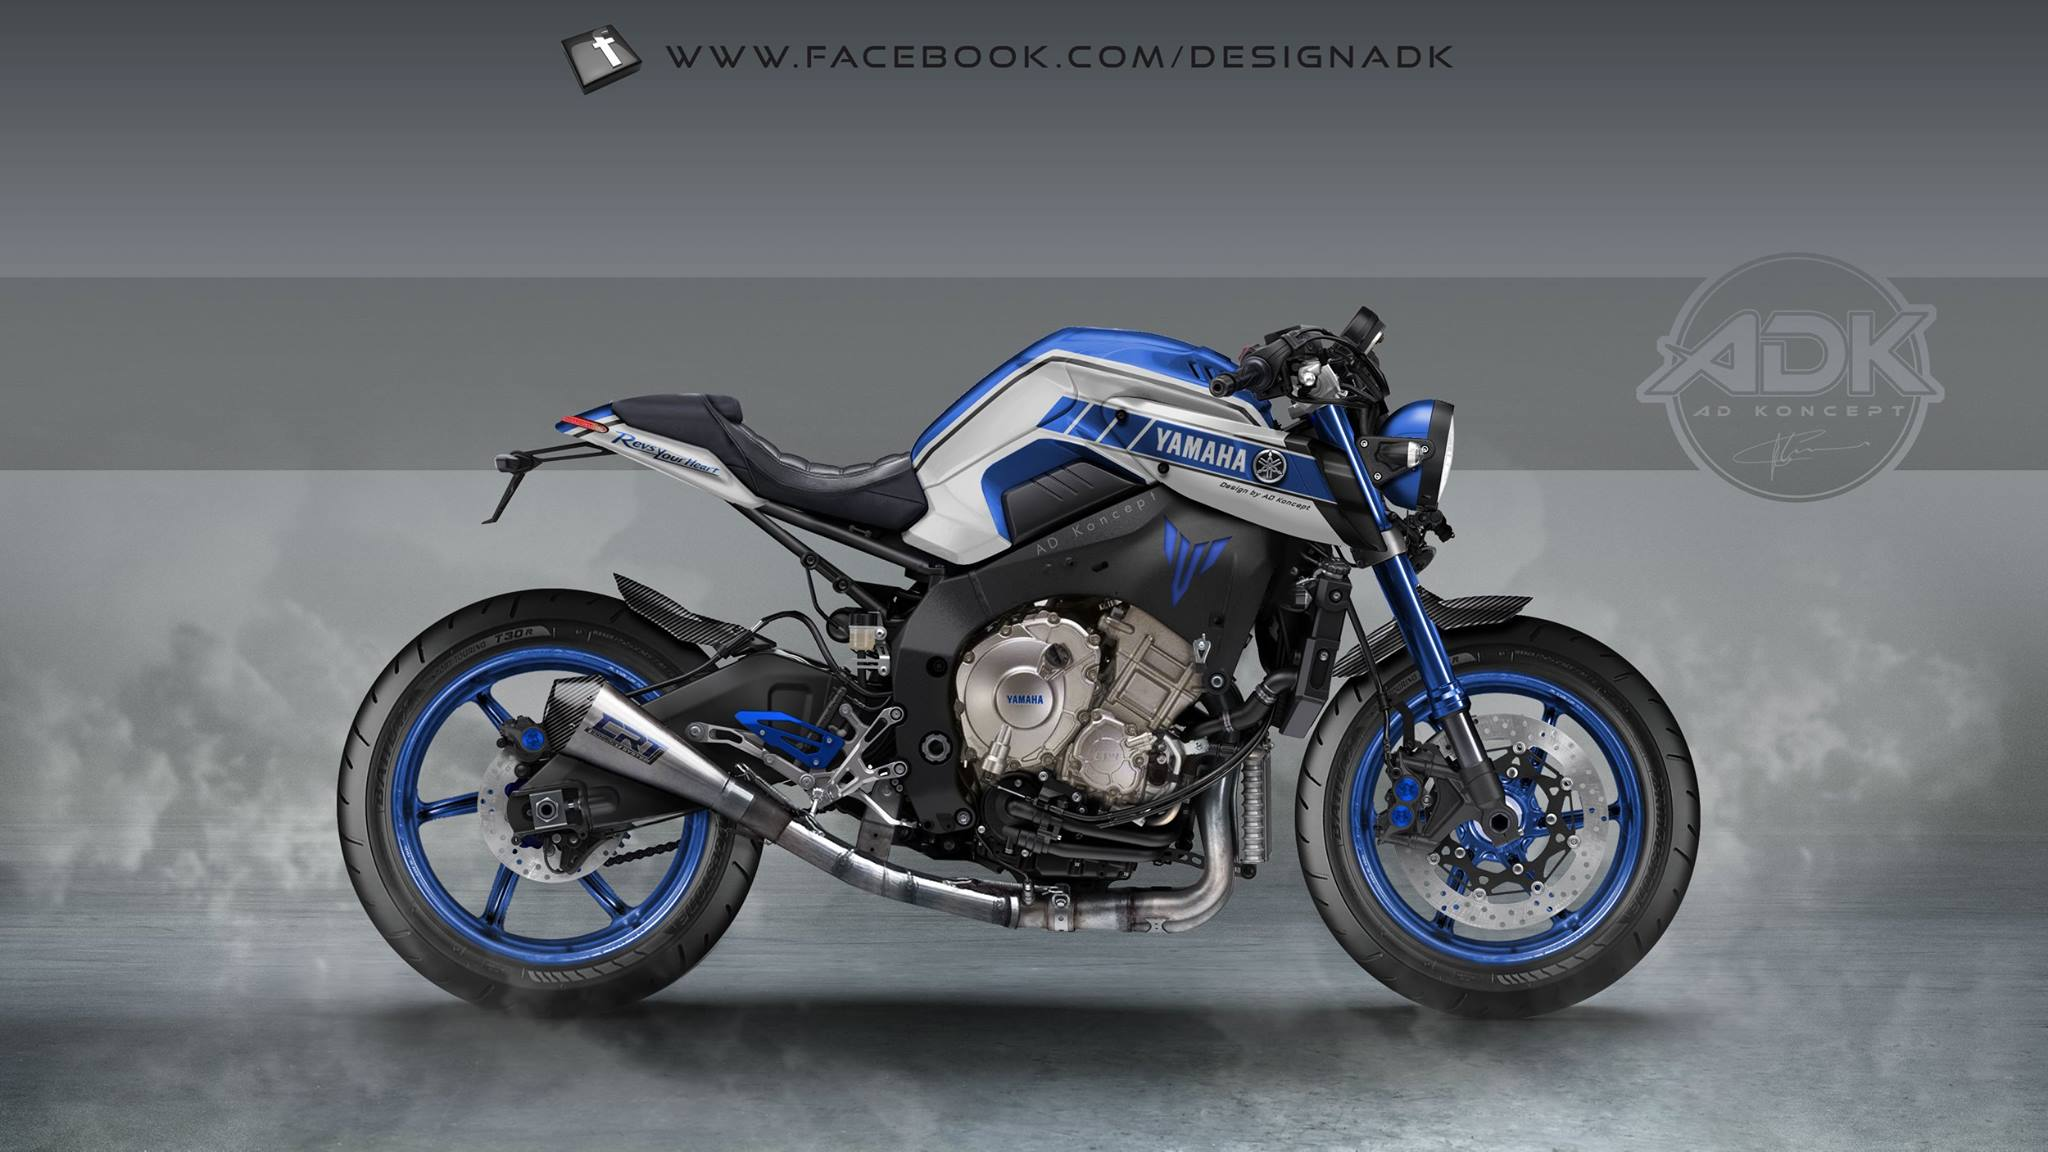 Yamaha Mt In Valentino Rossi Livery And More From Ad Koncept on Audi A4 Quattro Exhaust System